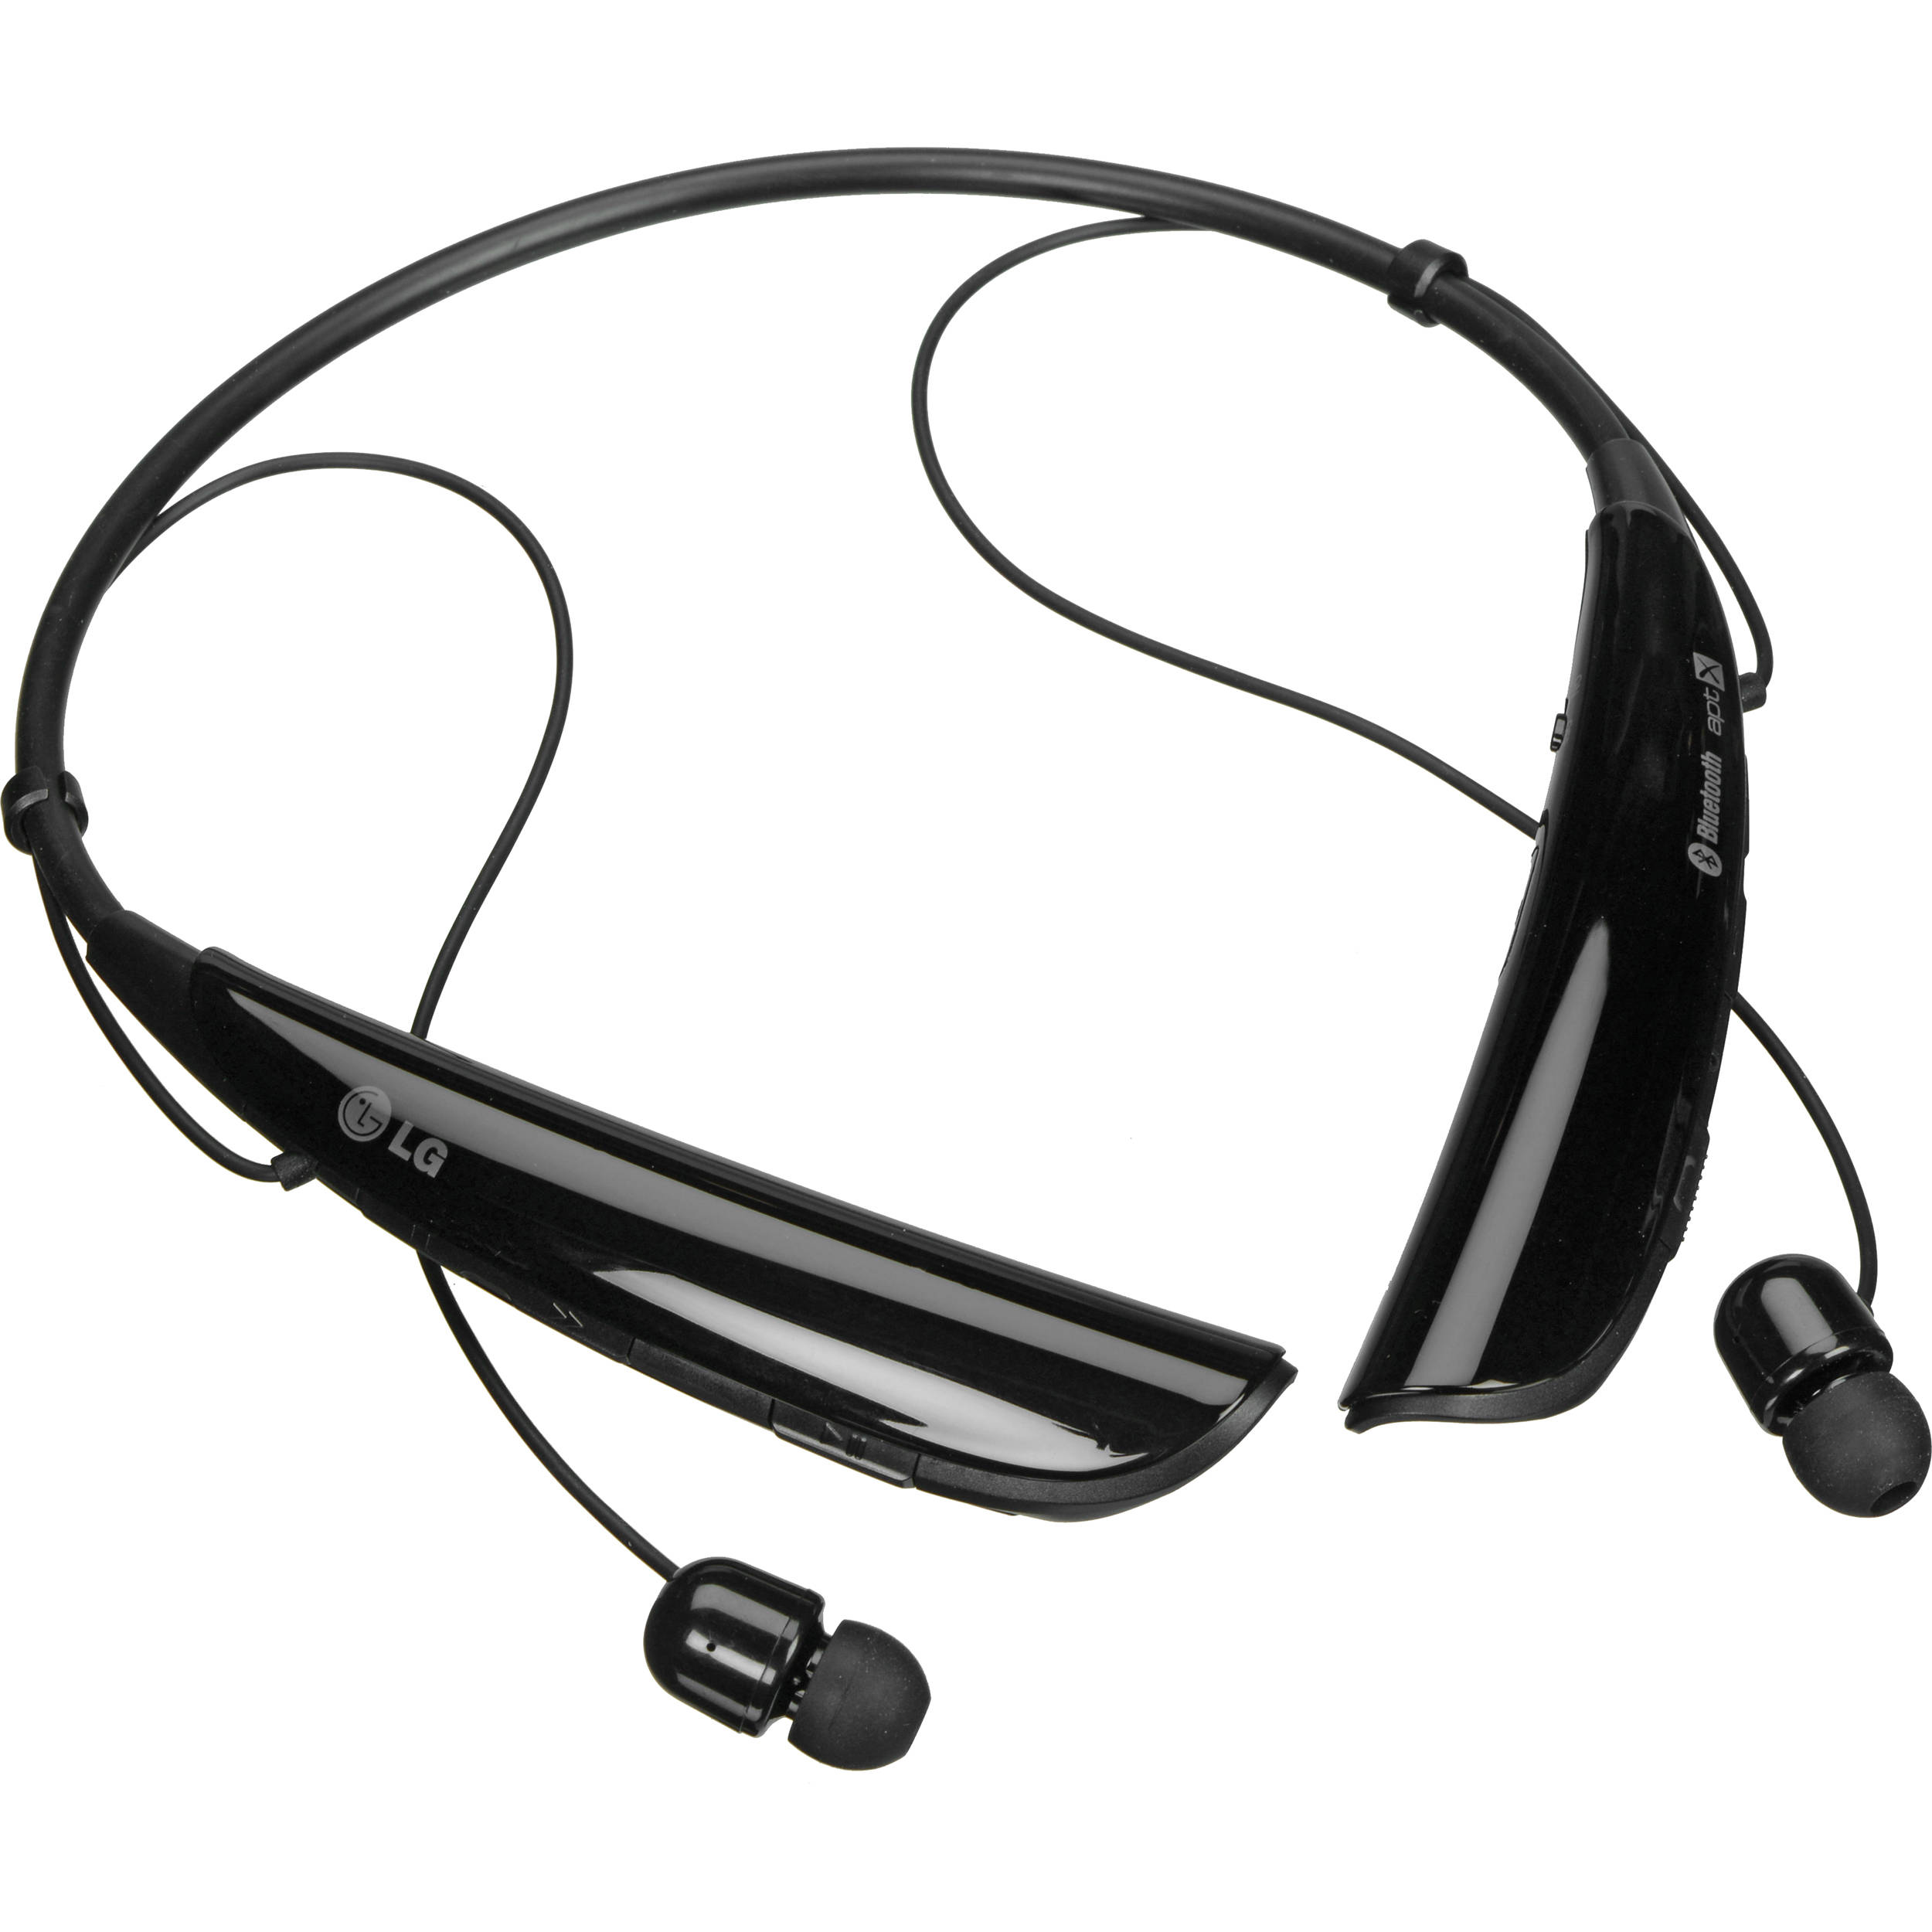 Bluetooth Wireless Headset Walmart: LG Tone Pro HBS750 Bluetooth Stereo Headset HBS-750.ACUSBKK B&H